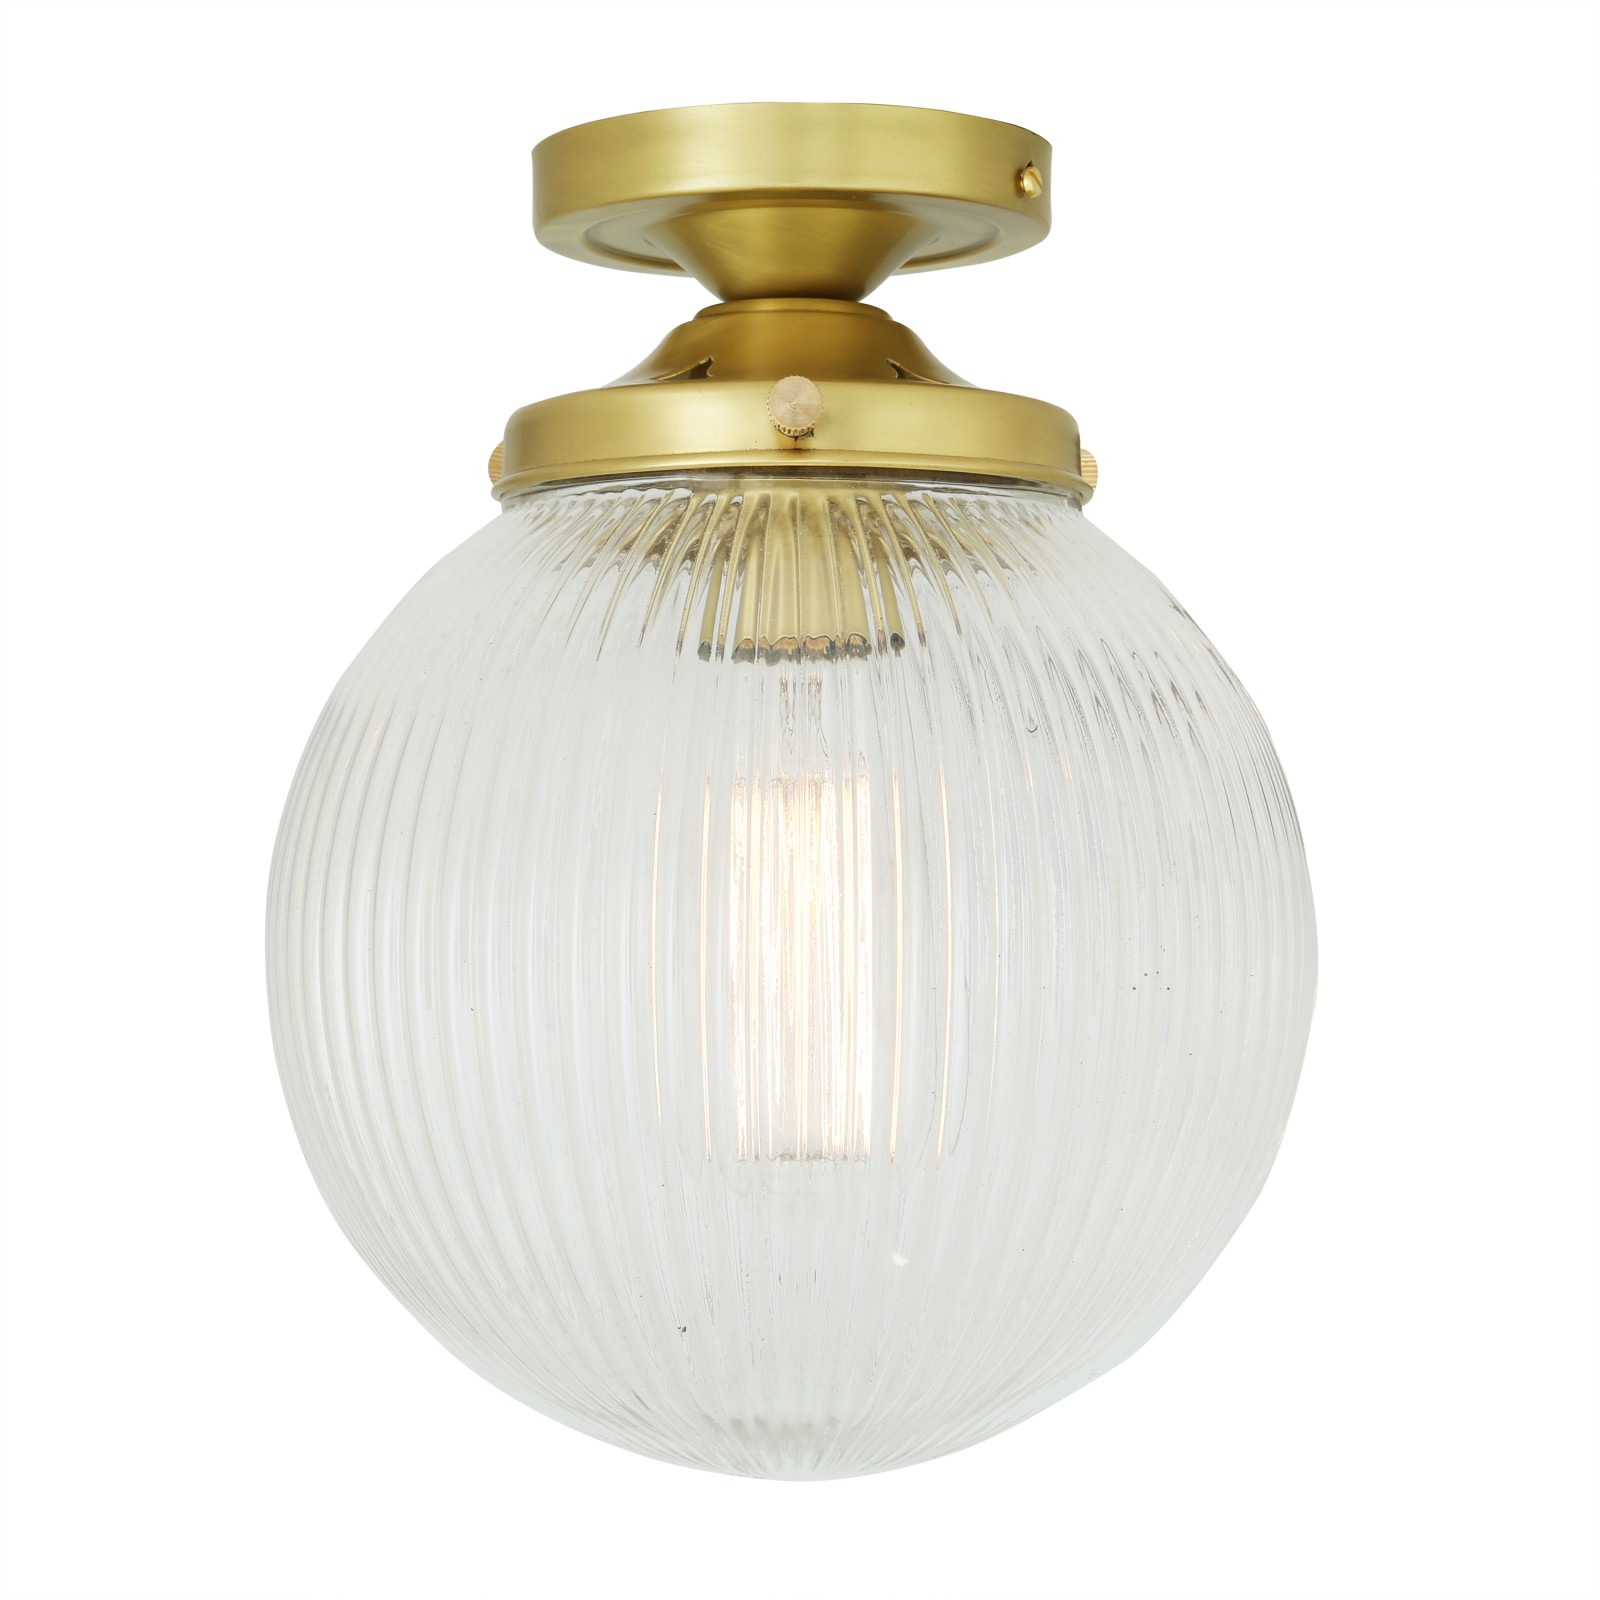 Stanley Ceiling Light Satin Brass